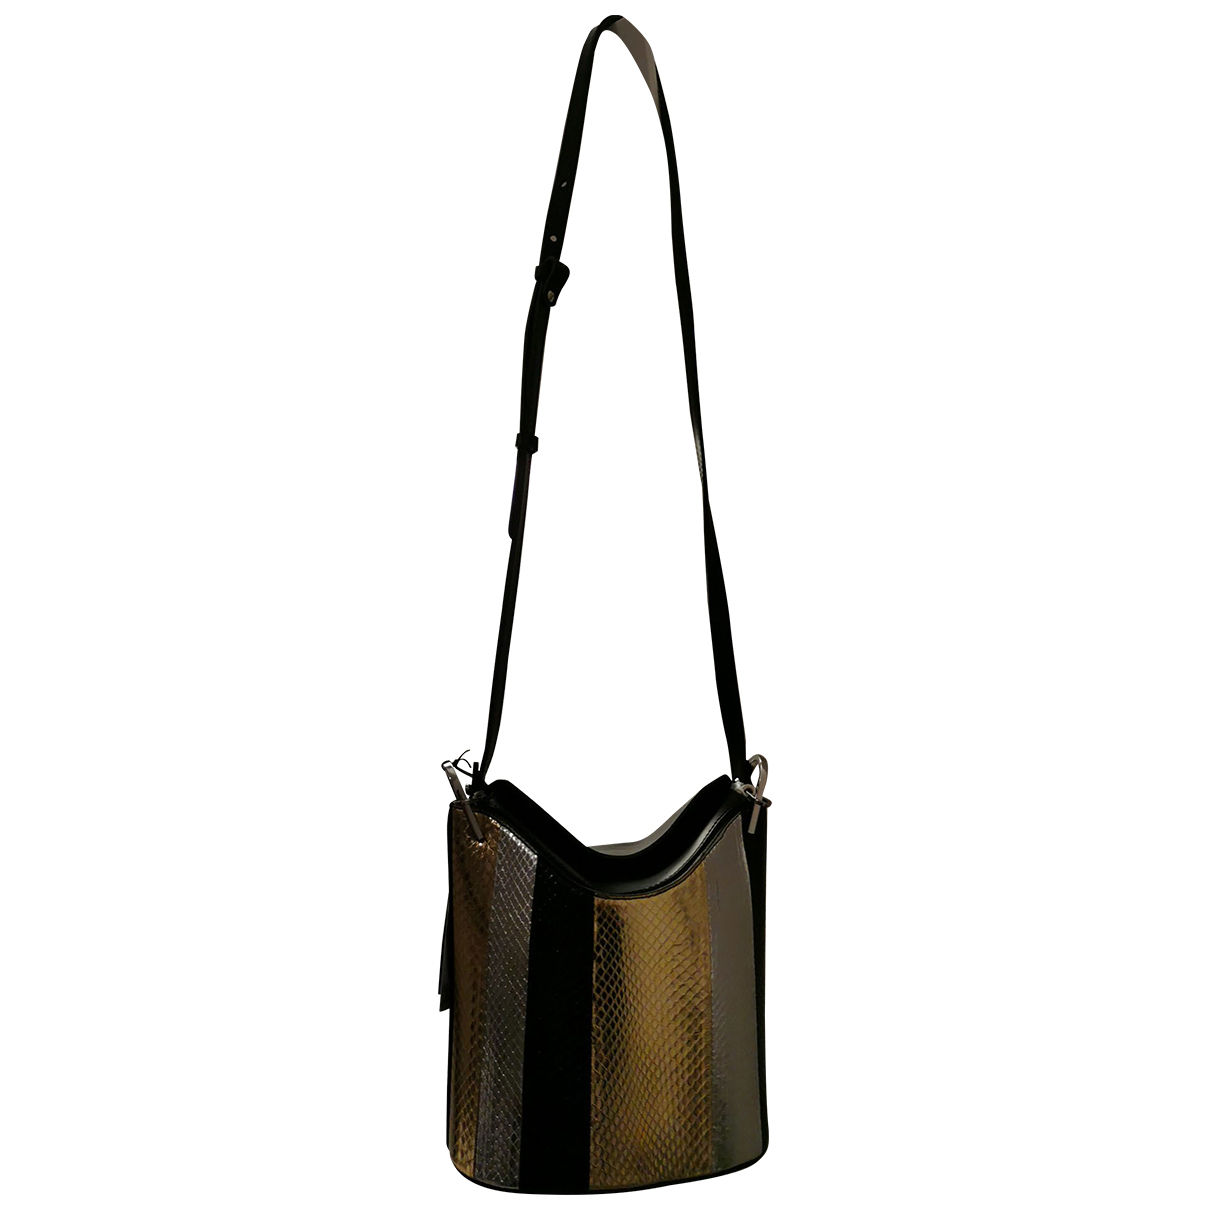 Gianni Chiarini N Black Leather handbag for Women N